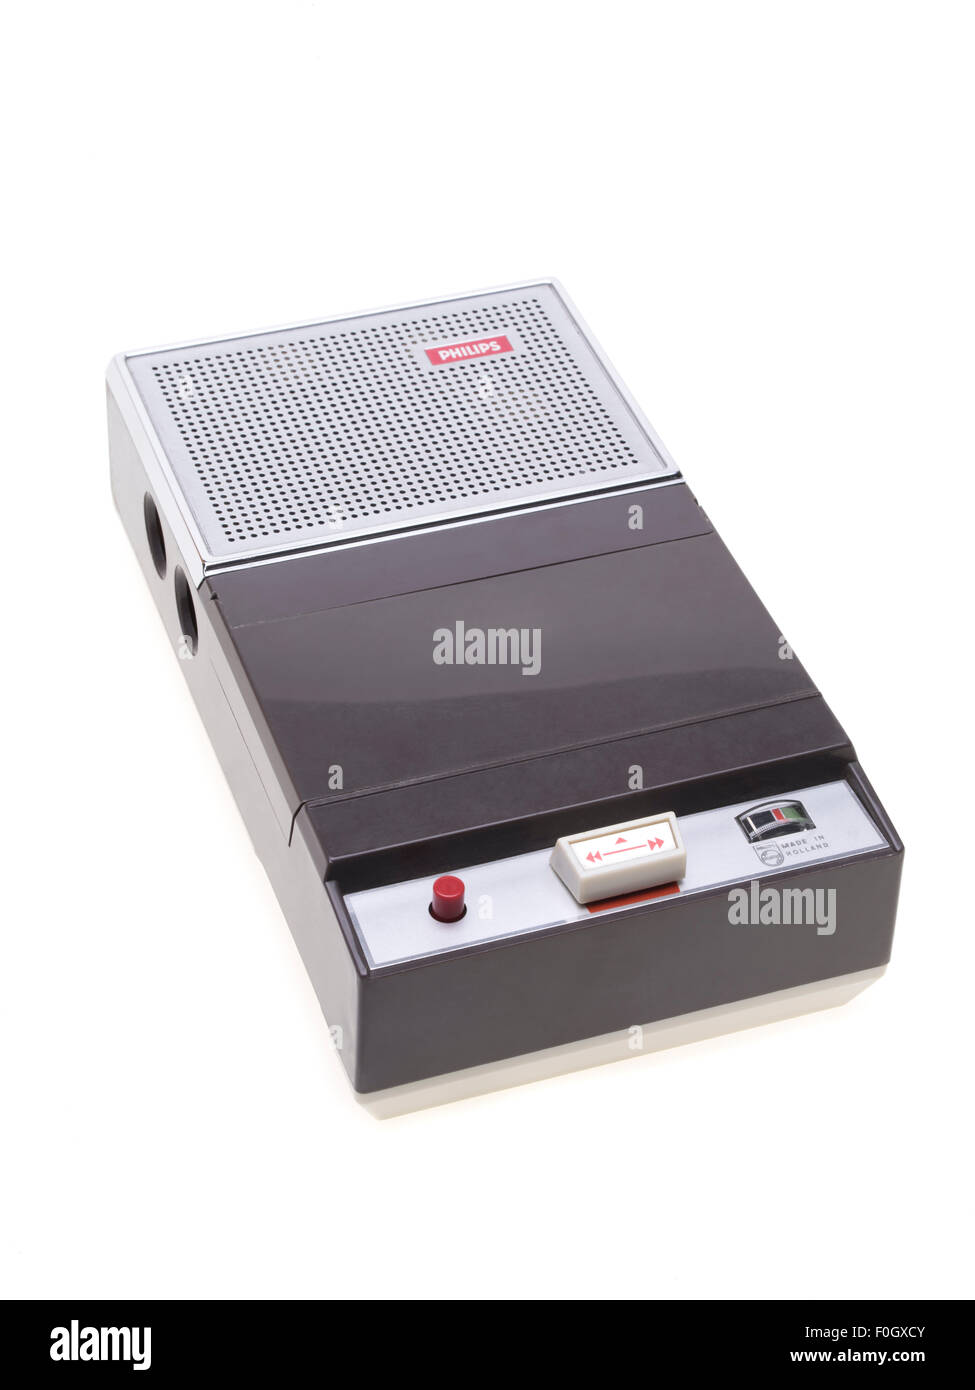 PHILIPS EL3300/00 The first Compact Cassette player/recorder in the World 1963 / 1964 - Stock Image